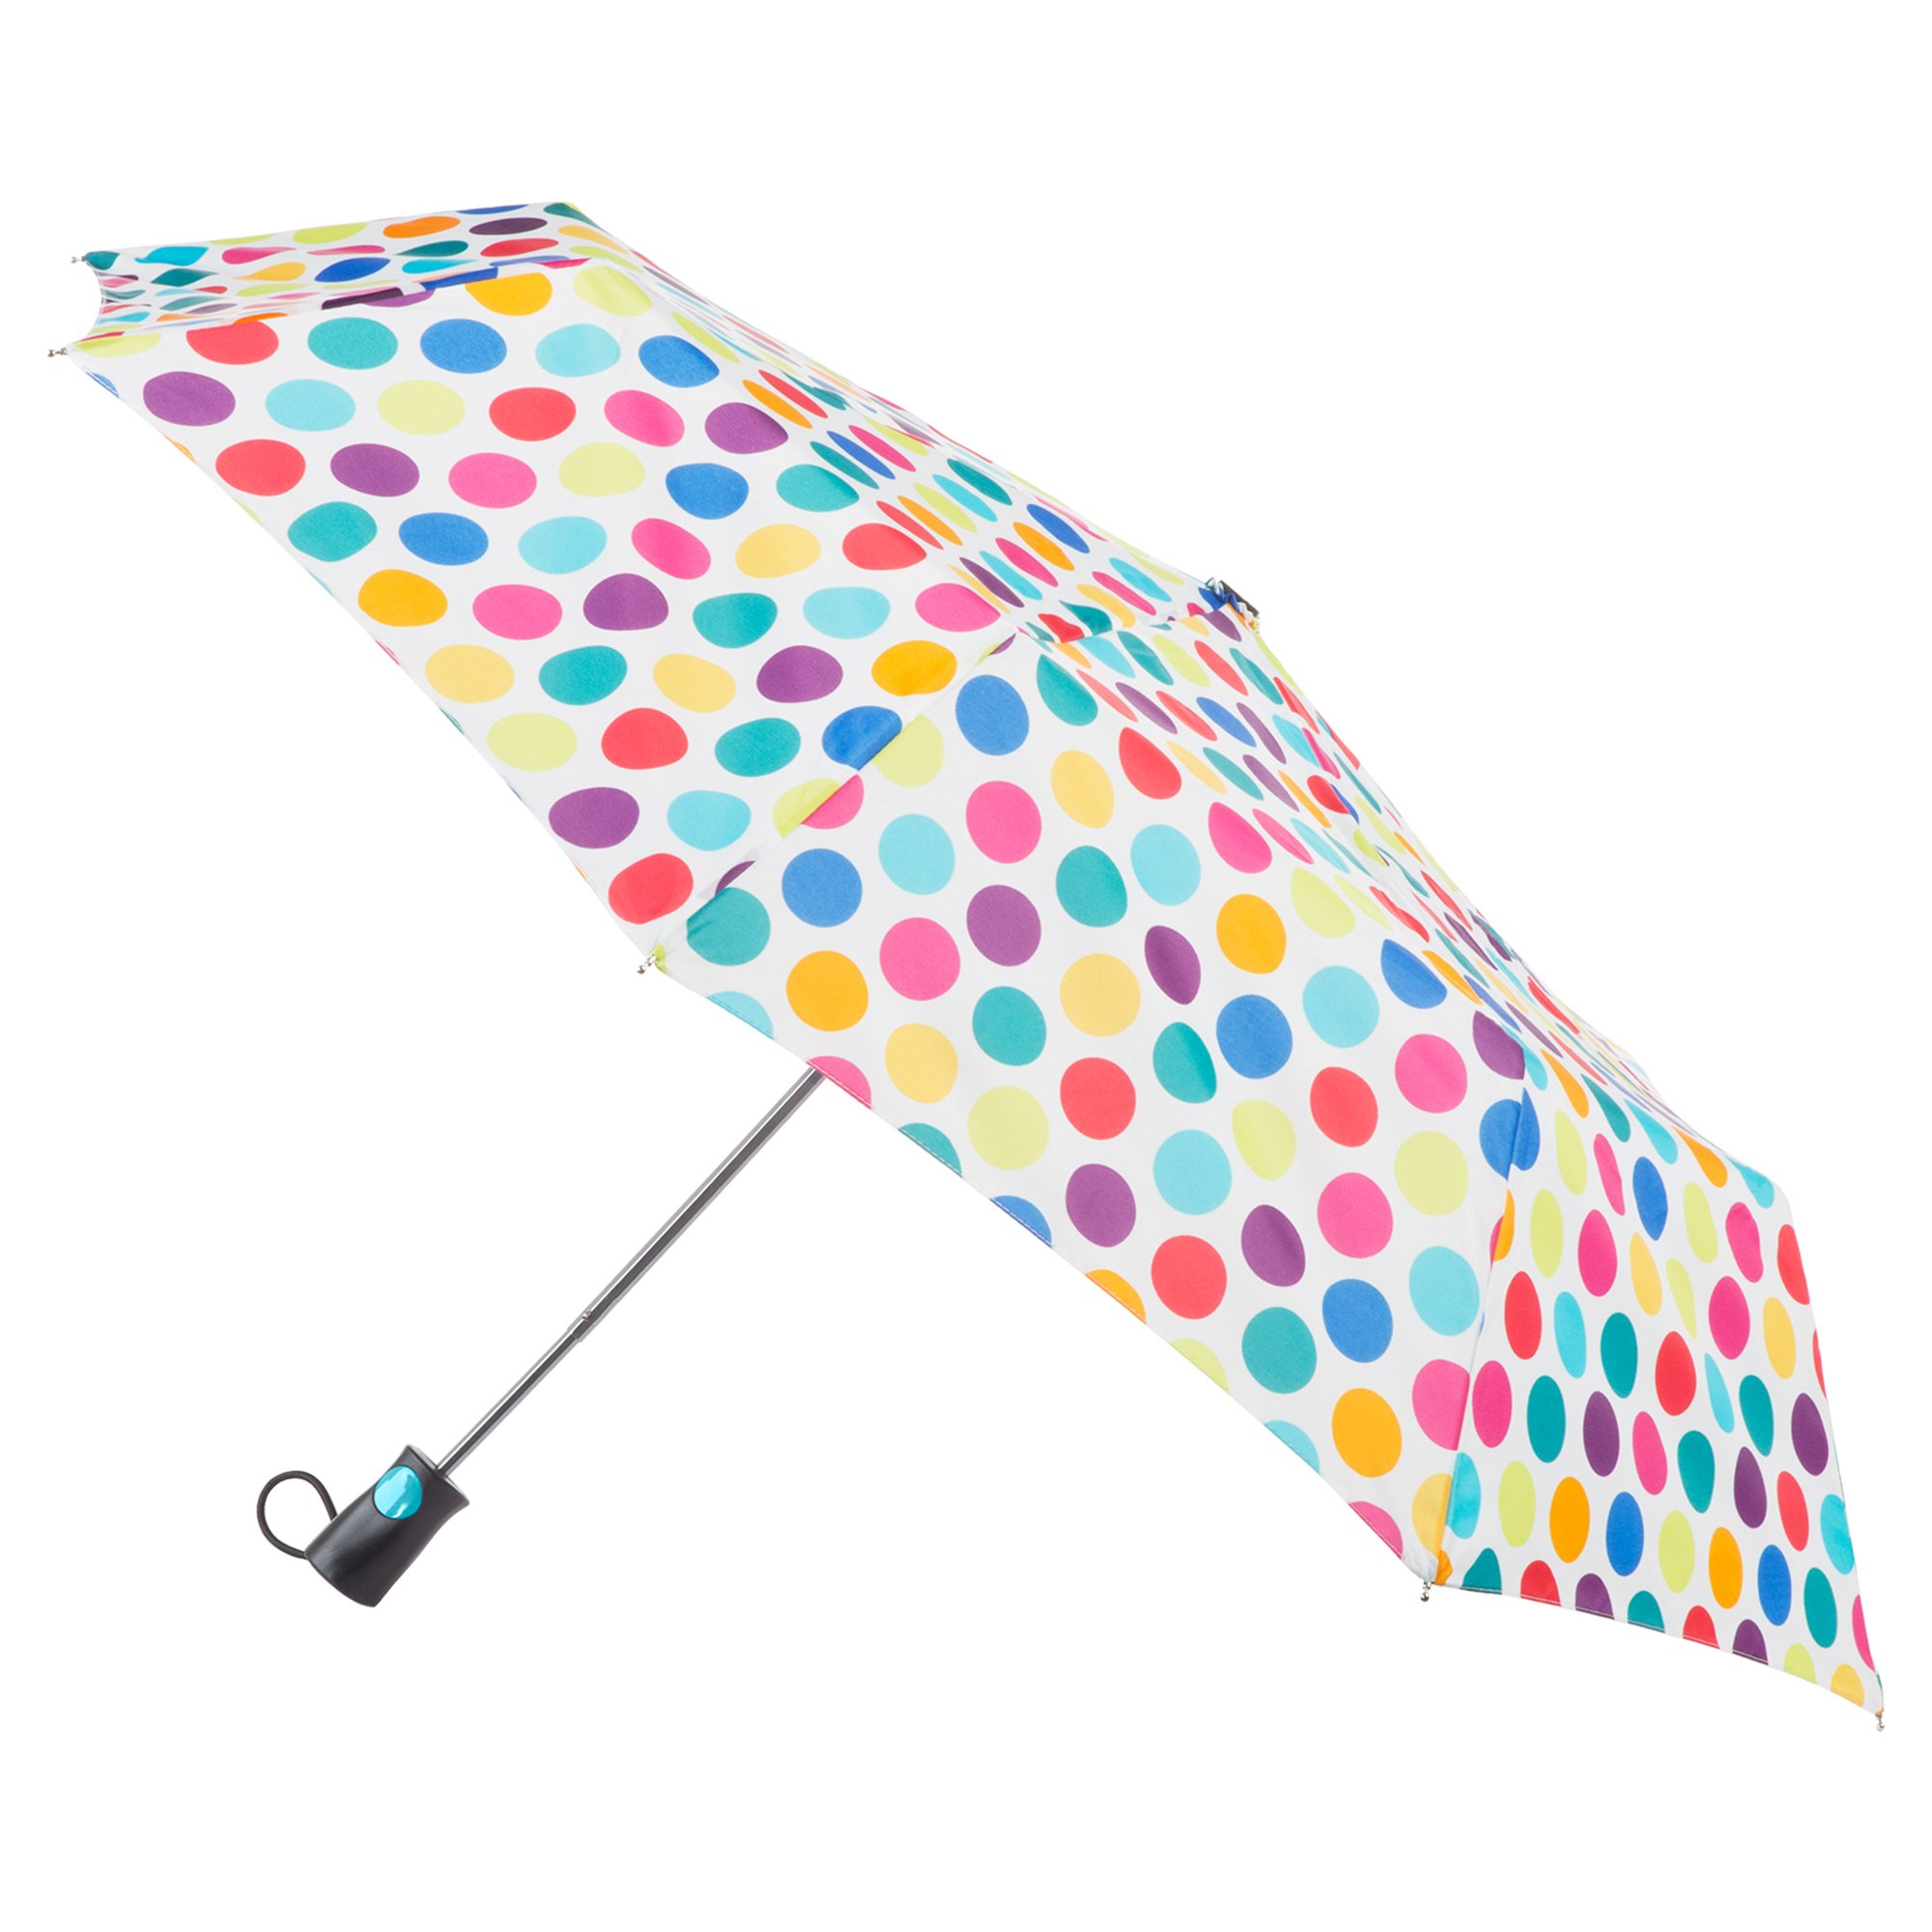 totes Women's Sunguard One-Touch Auto Open Umbrella with Neverwet, Judy Garland by totes (Image #1)